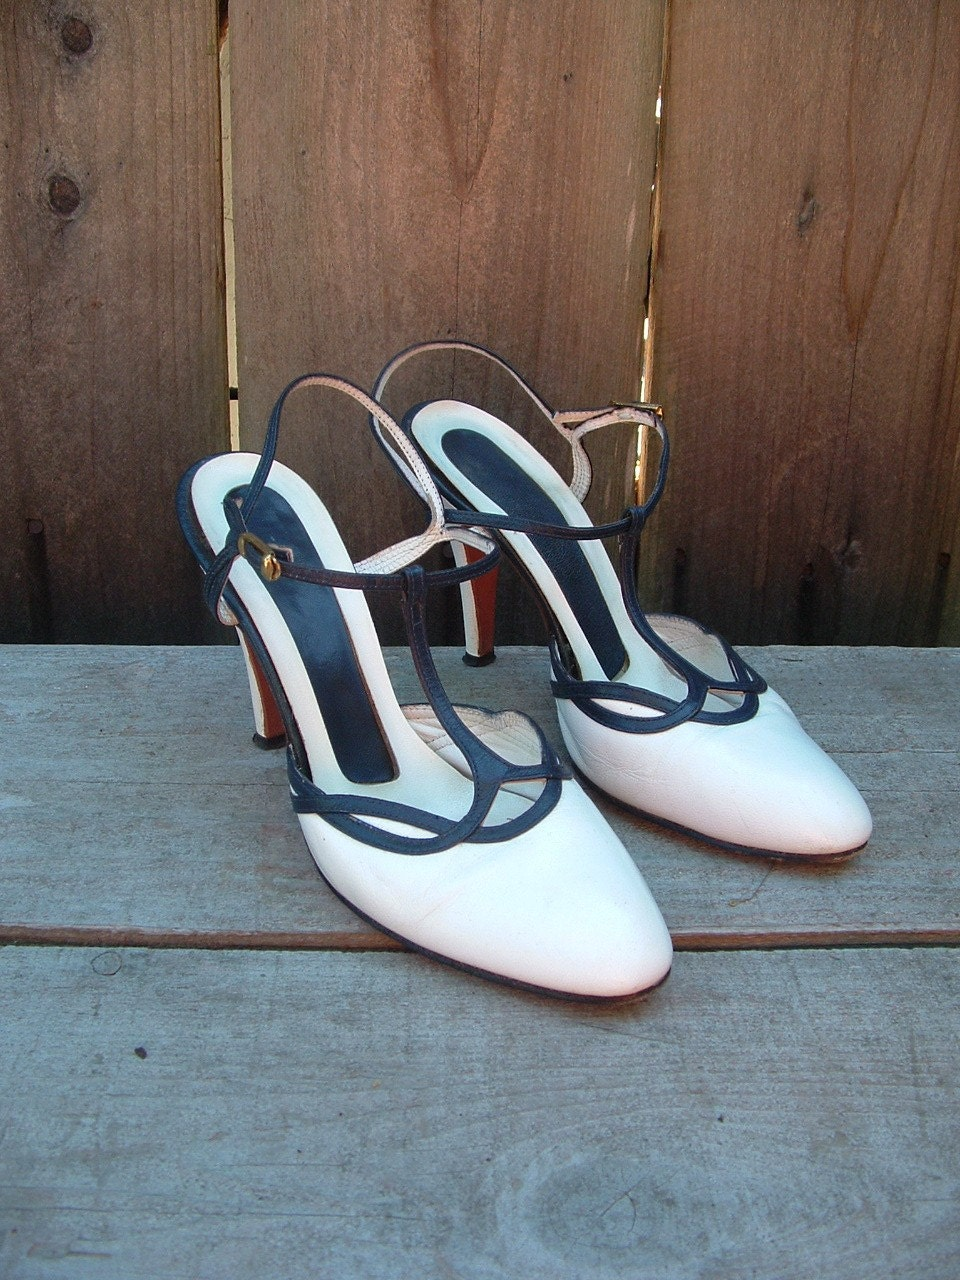 SALE 40s White and Navy Leather T-Strap Heels